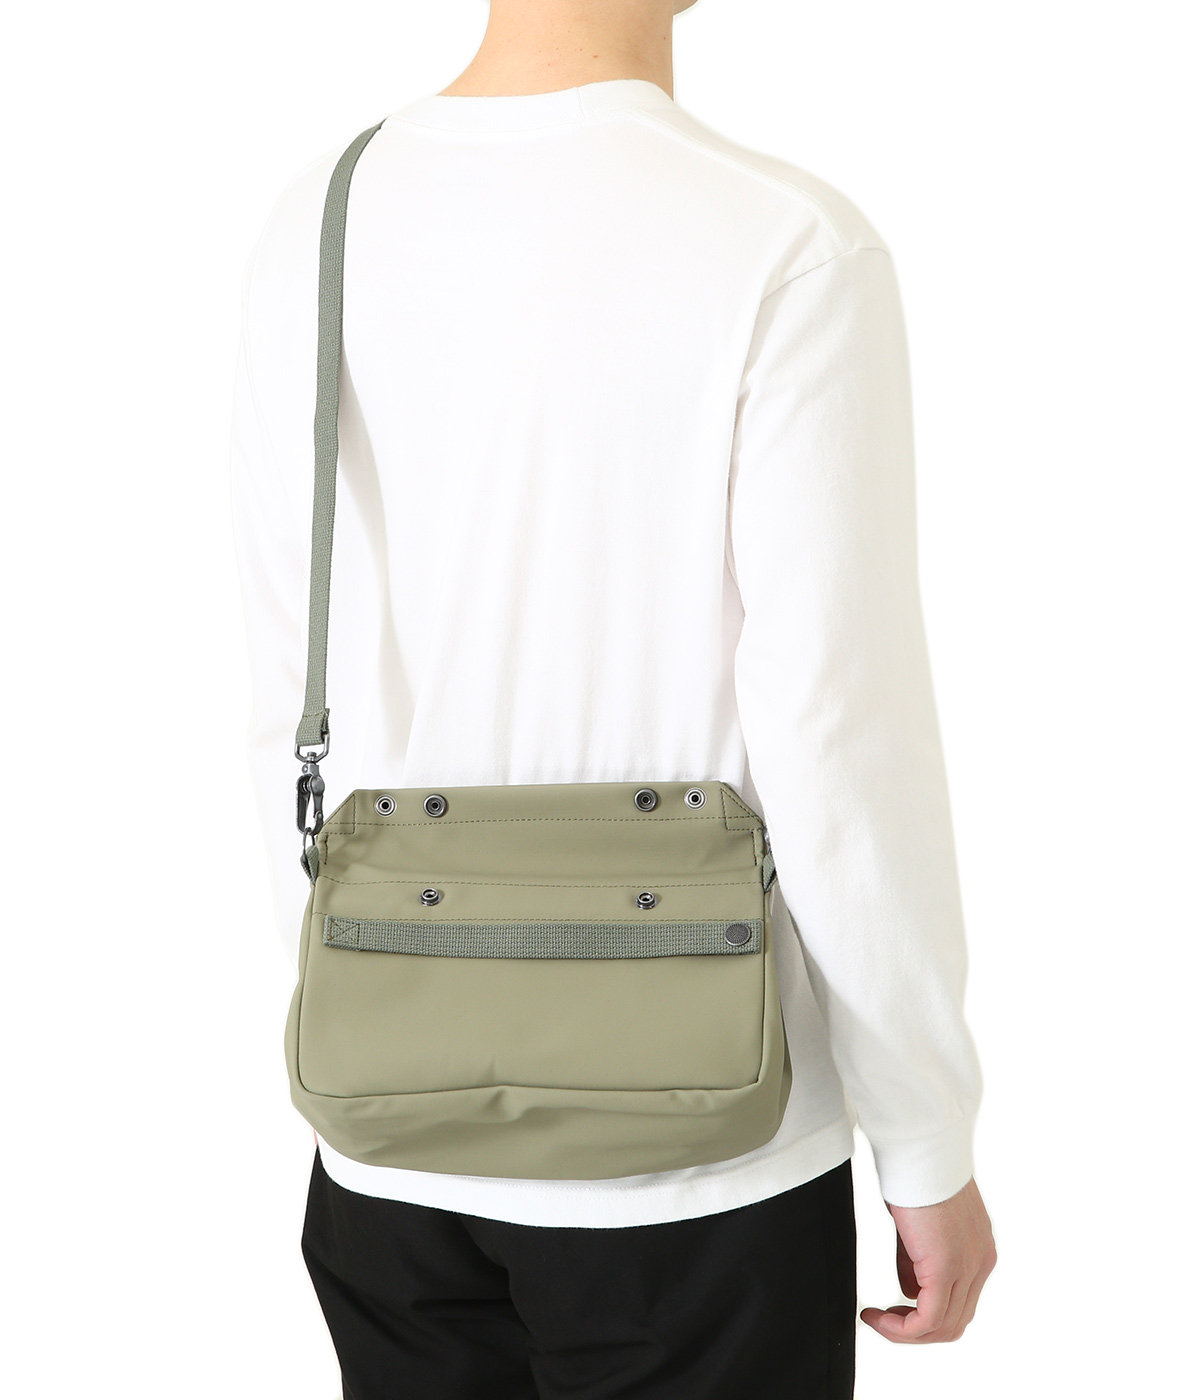 SMALL SHOULDER BAG SMALL